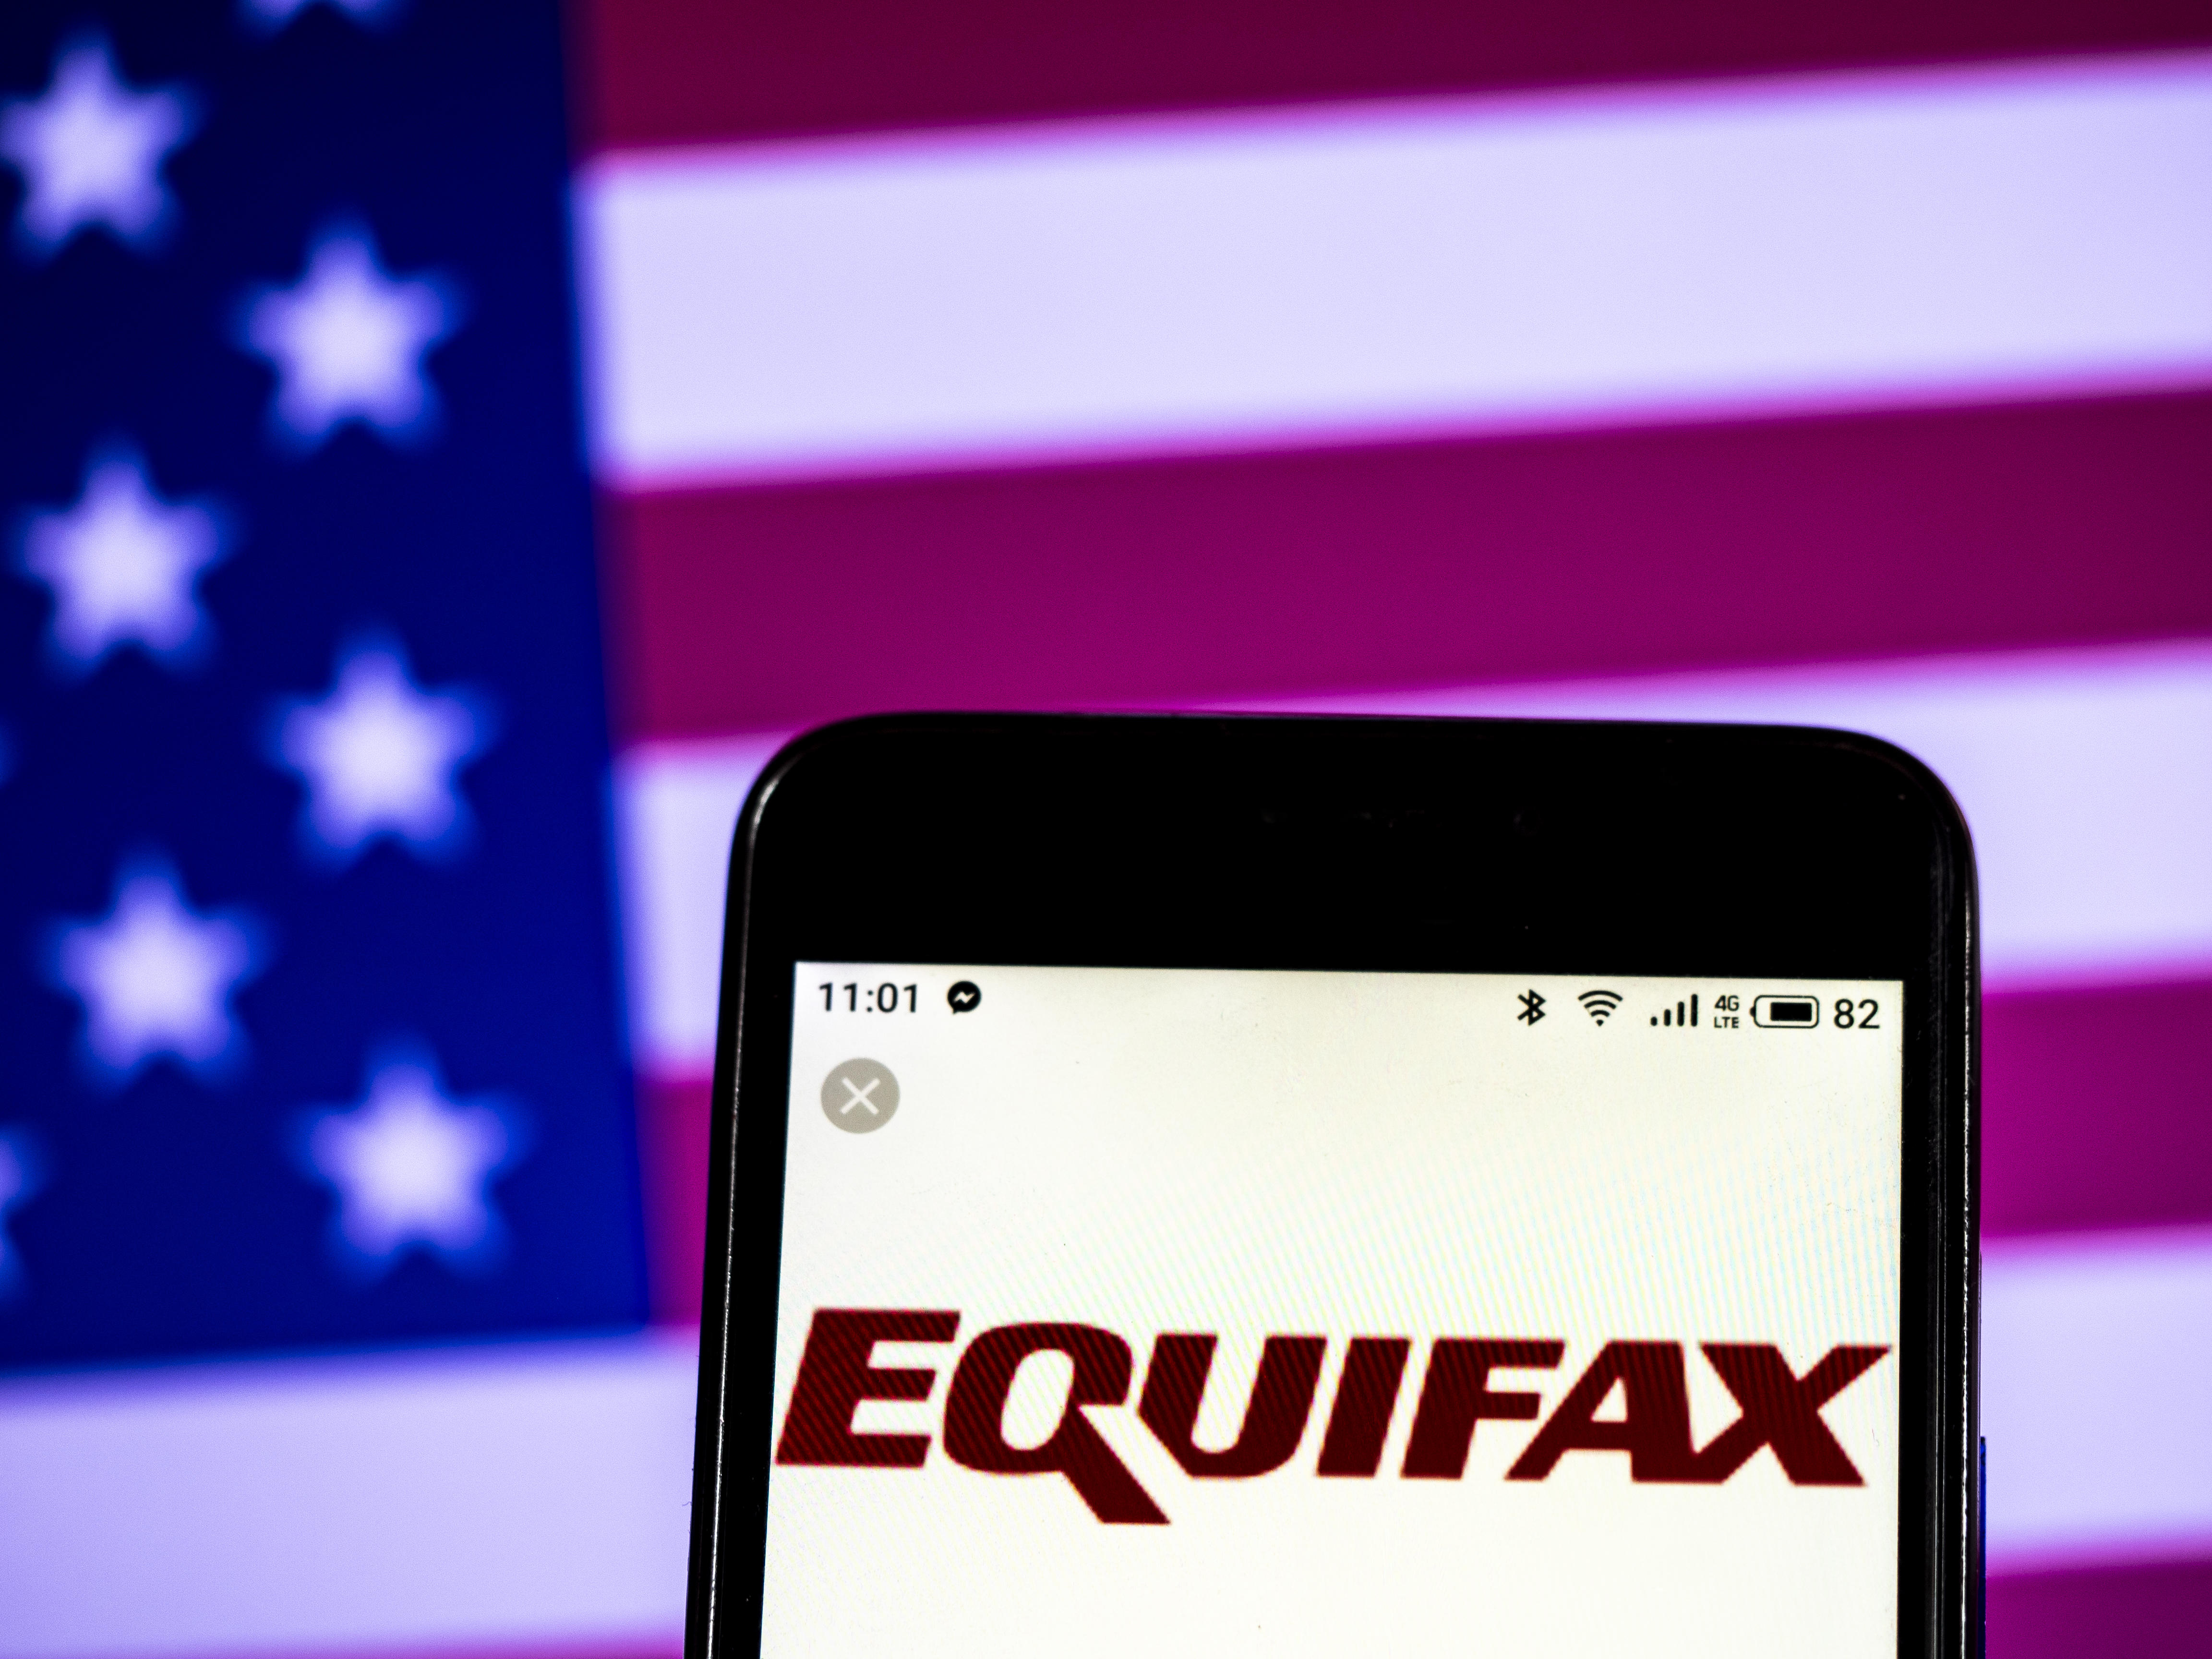 Equifax Consumer reporting agency company logo seen